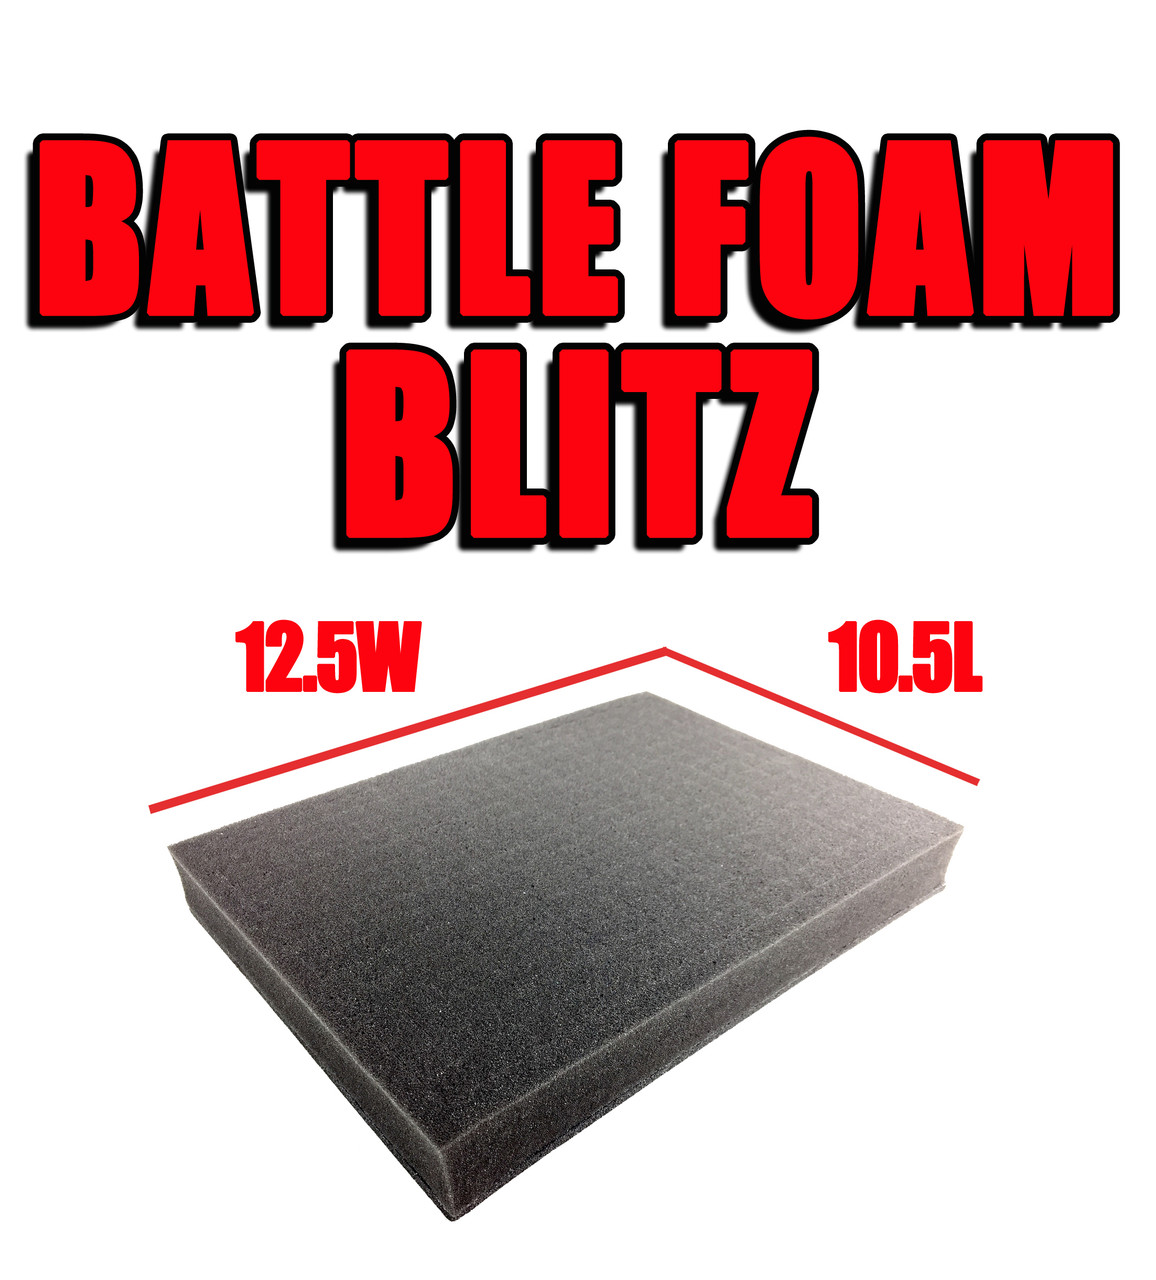 Battle Foam Blitz (12.5W x 10.5L)